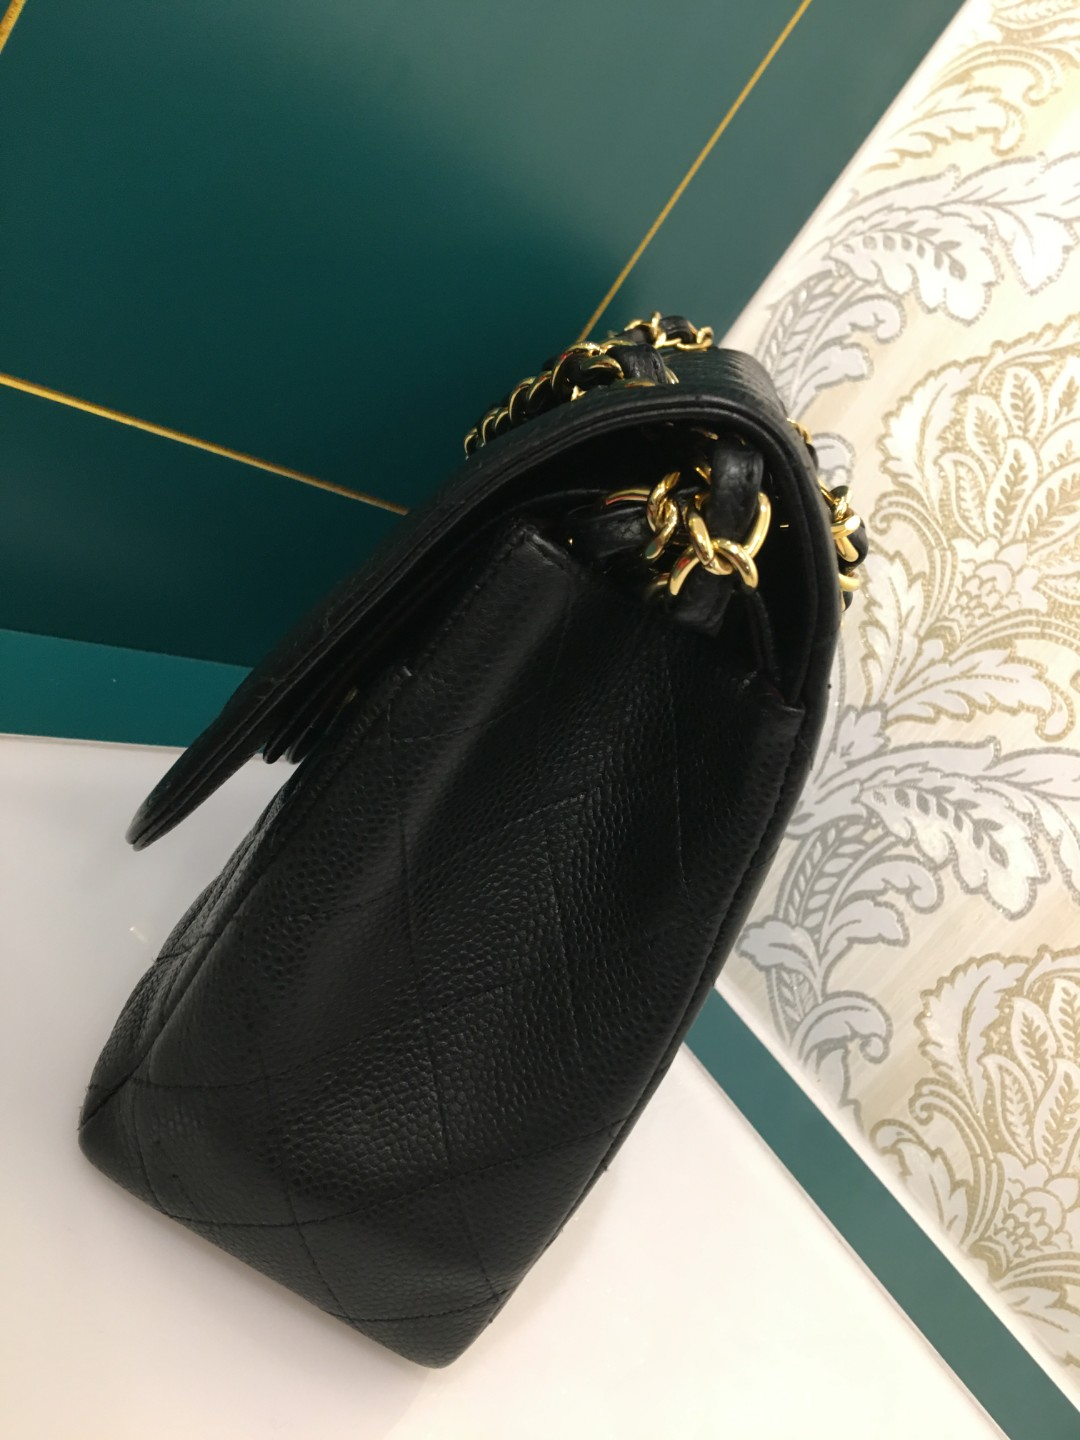 c9b806ac1aa8 ❌Reserved❌#22 Chanel Jumbo Classic Double Flap Black Caviar with GHW,  Luxury, Bags & Wallets, Handbags on Carousell